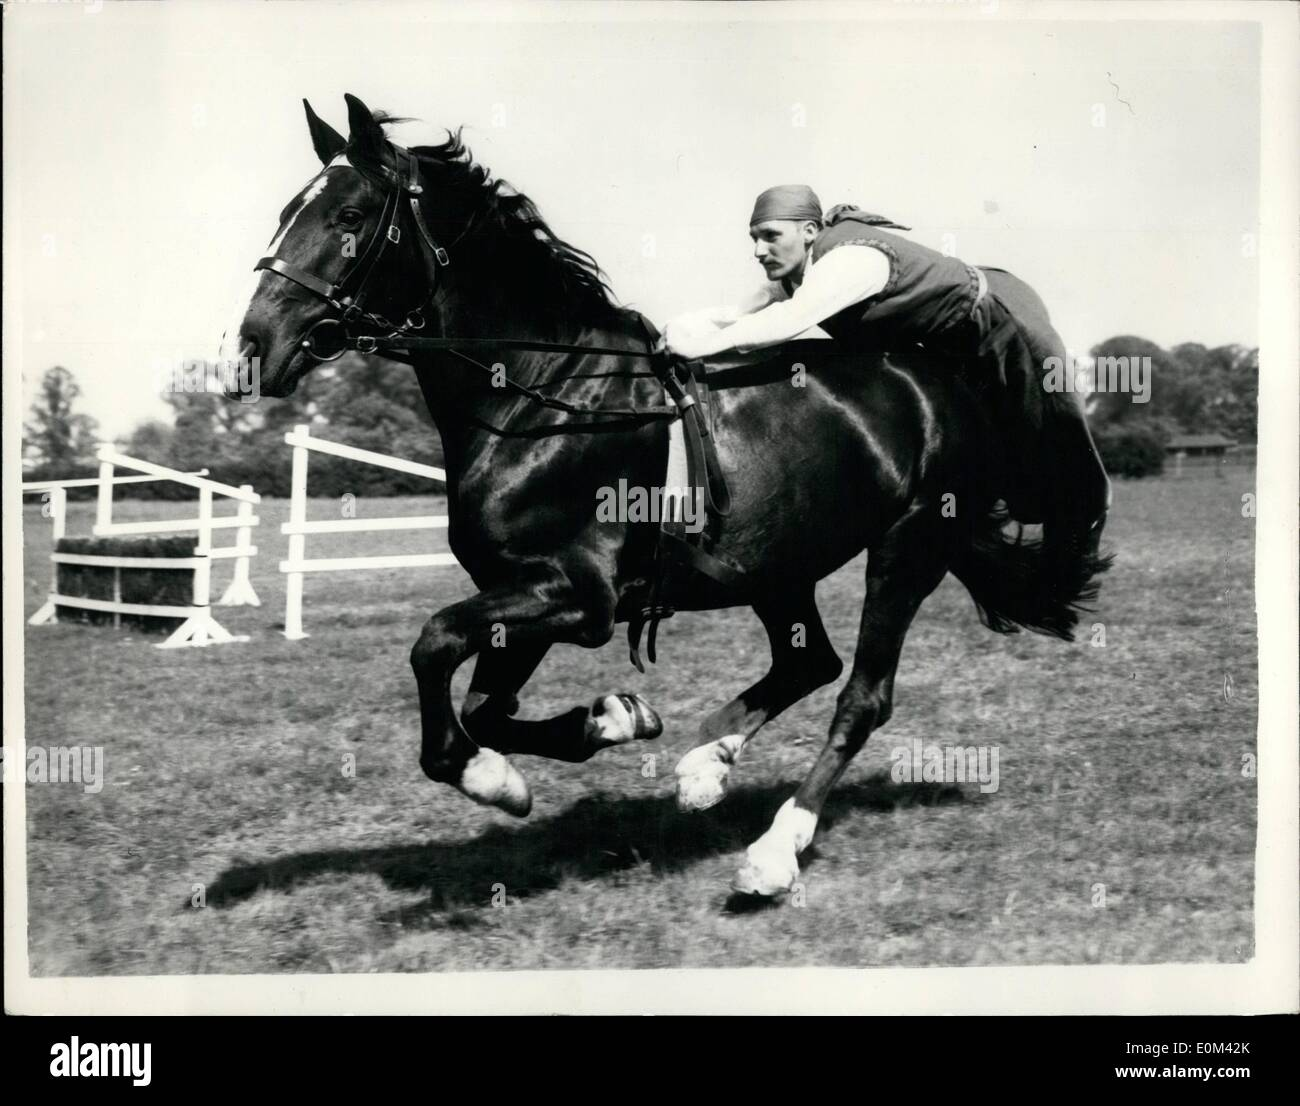 May 05, 1953 - Household Cavalry rehearse a ctivity ride. : Members of the Household Cavalry were rehearsing their Stock Photo